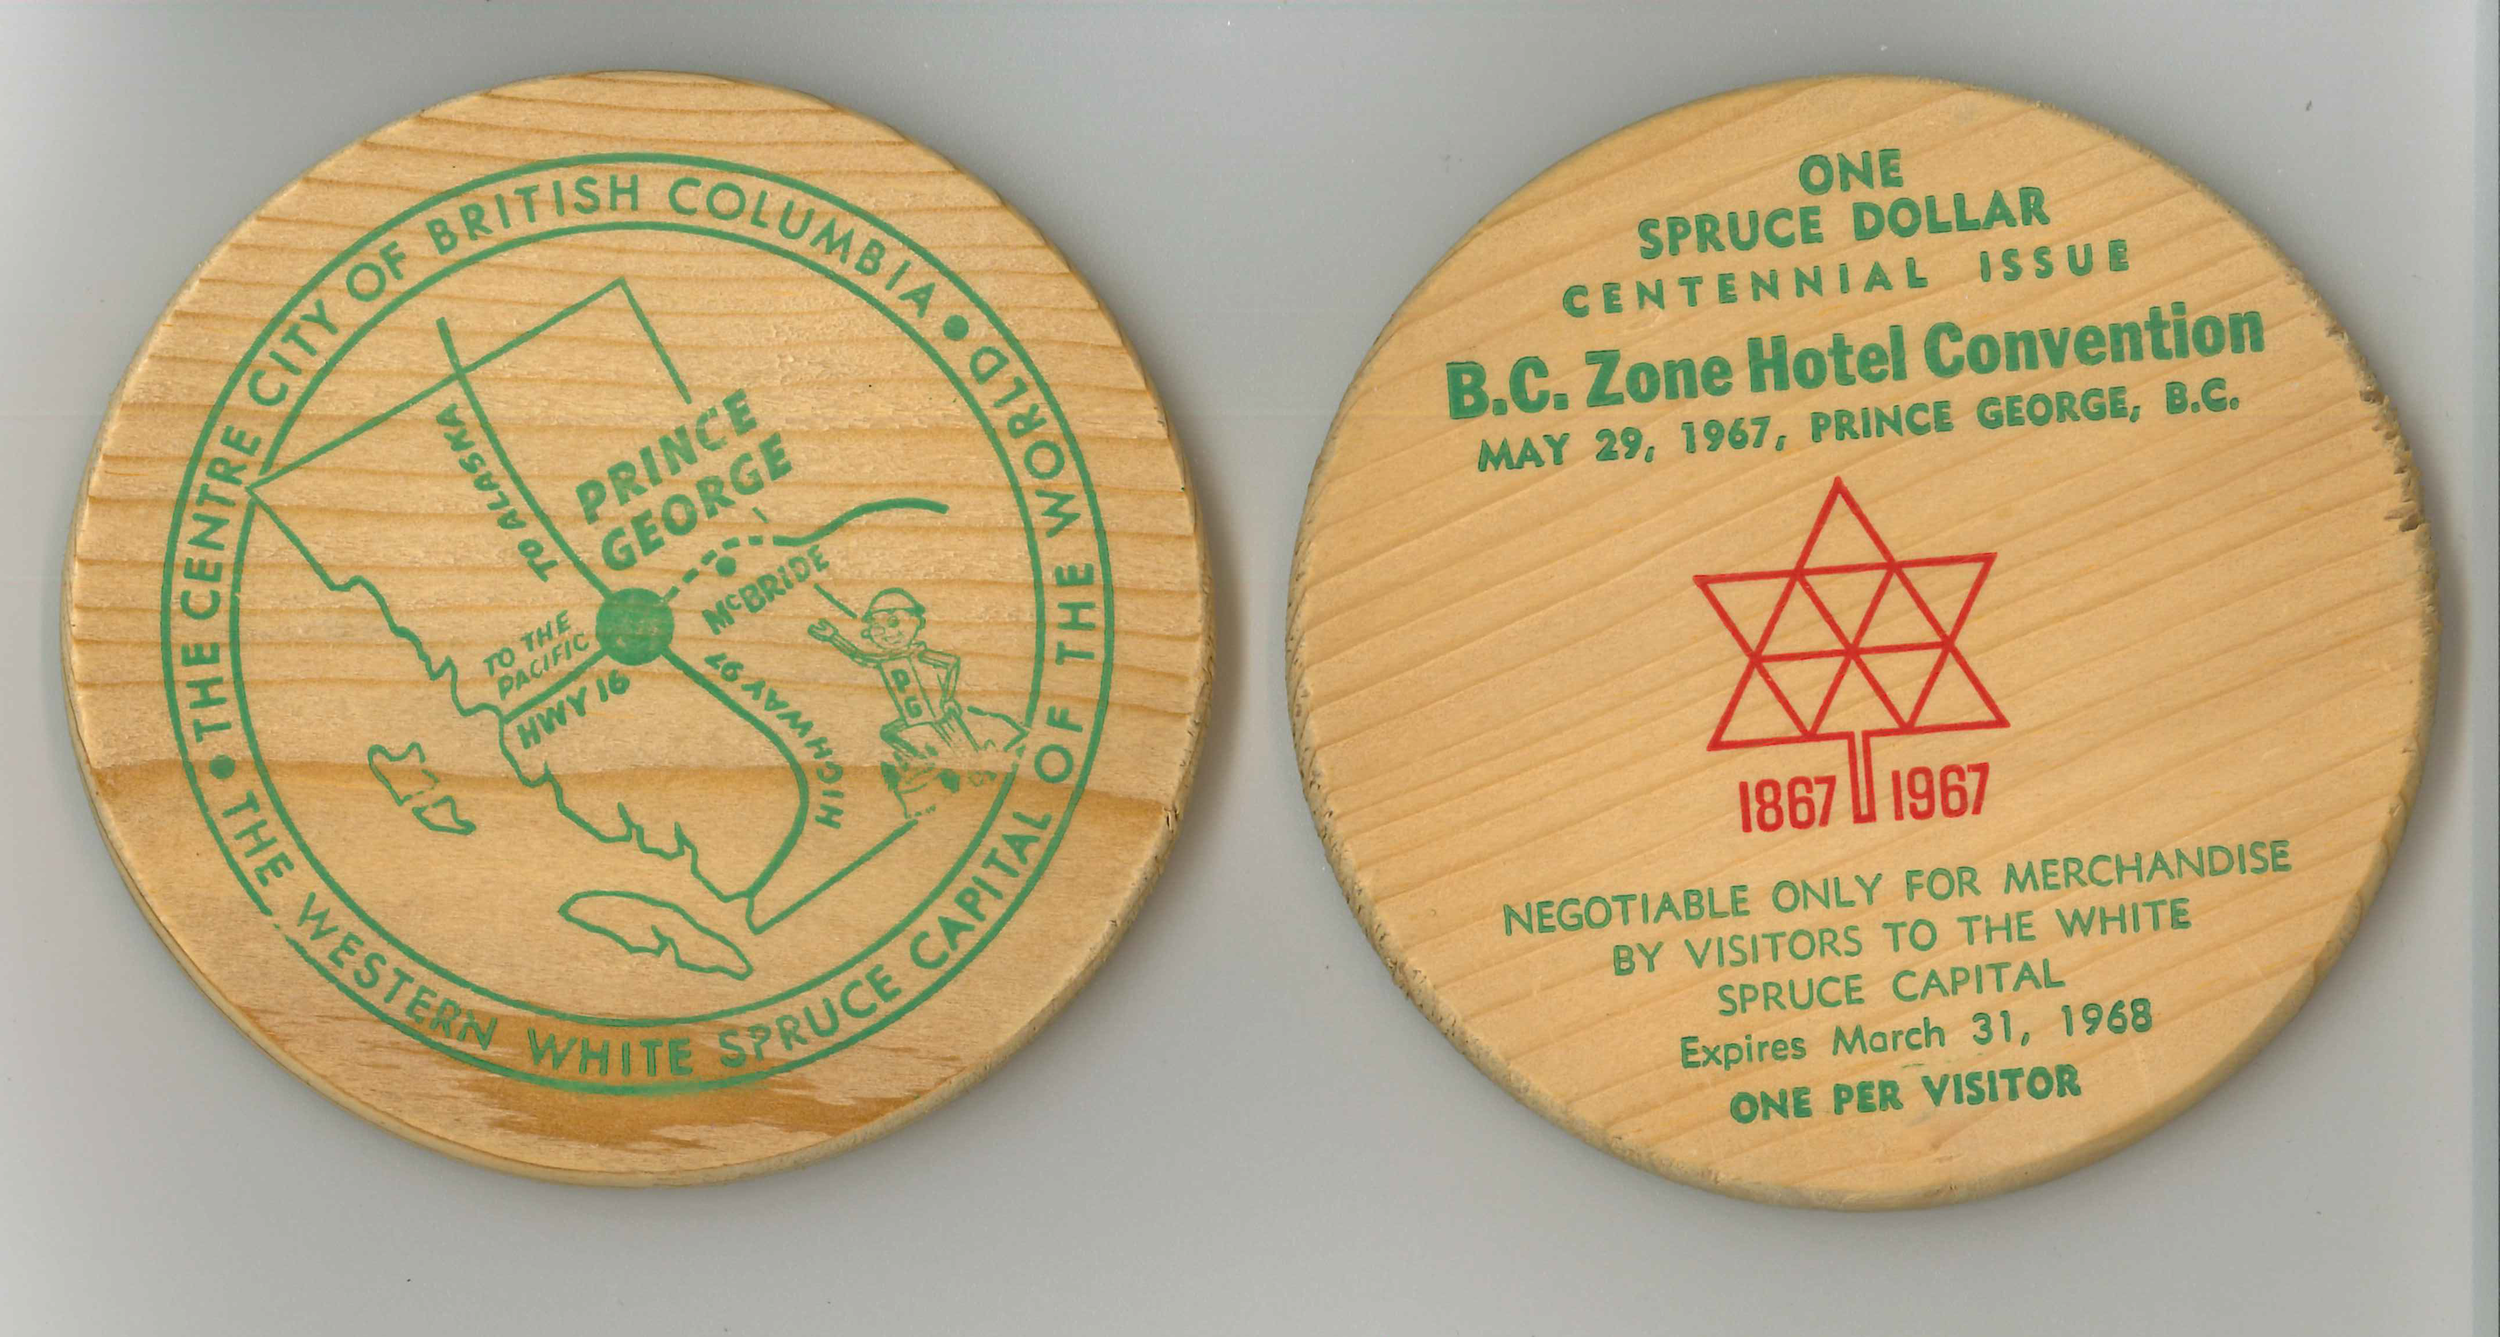 Hotel Convention Coin, 1967